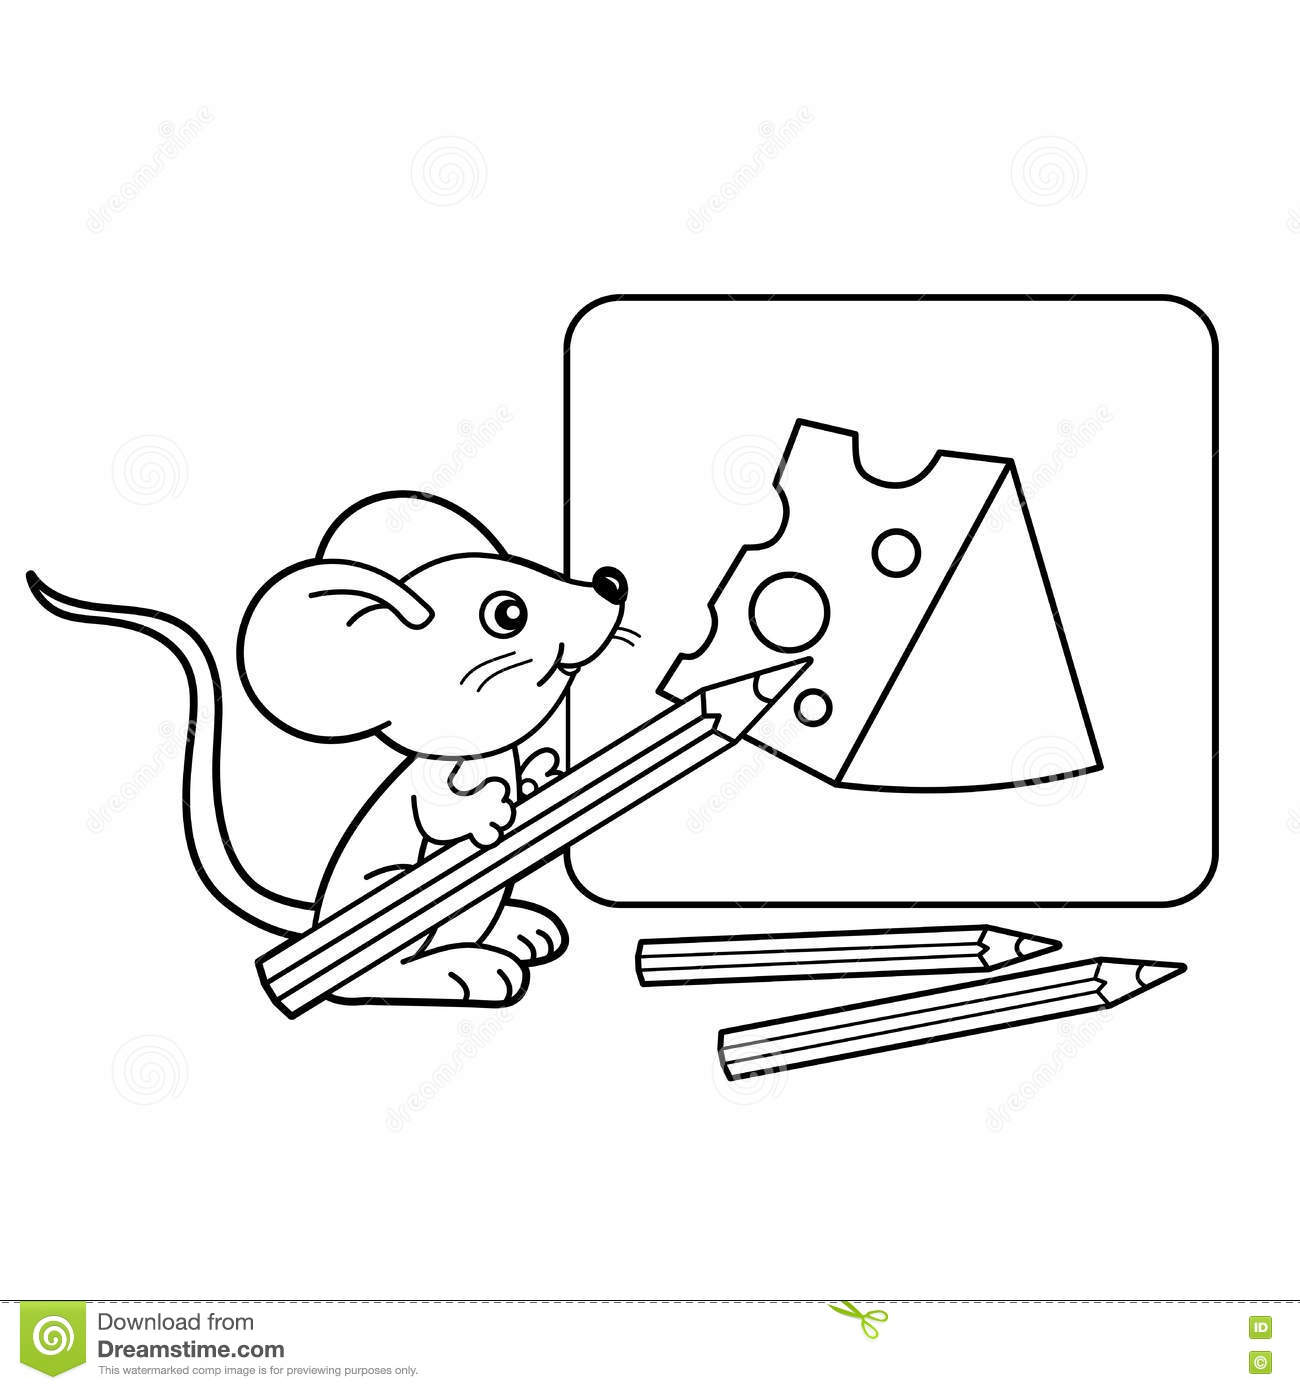 coloring page outline of cartoon little mouse with pencils with